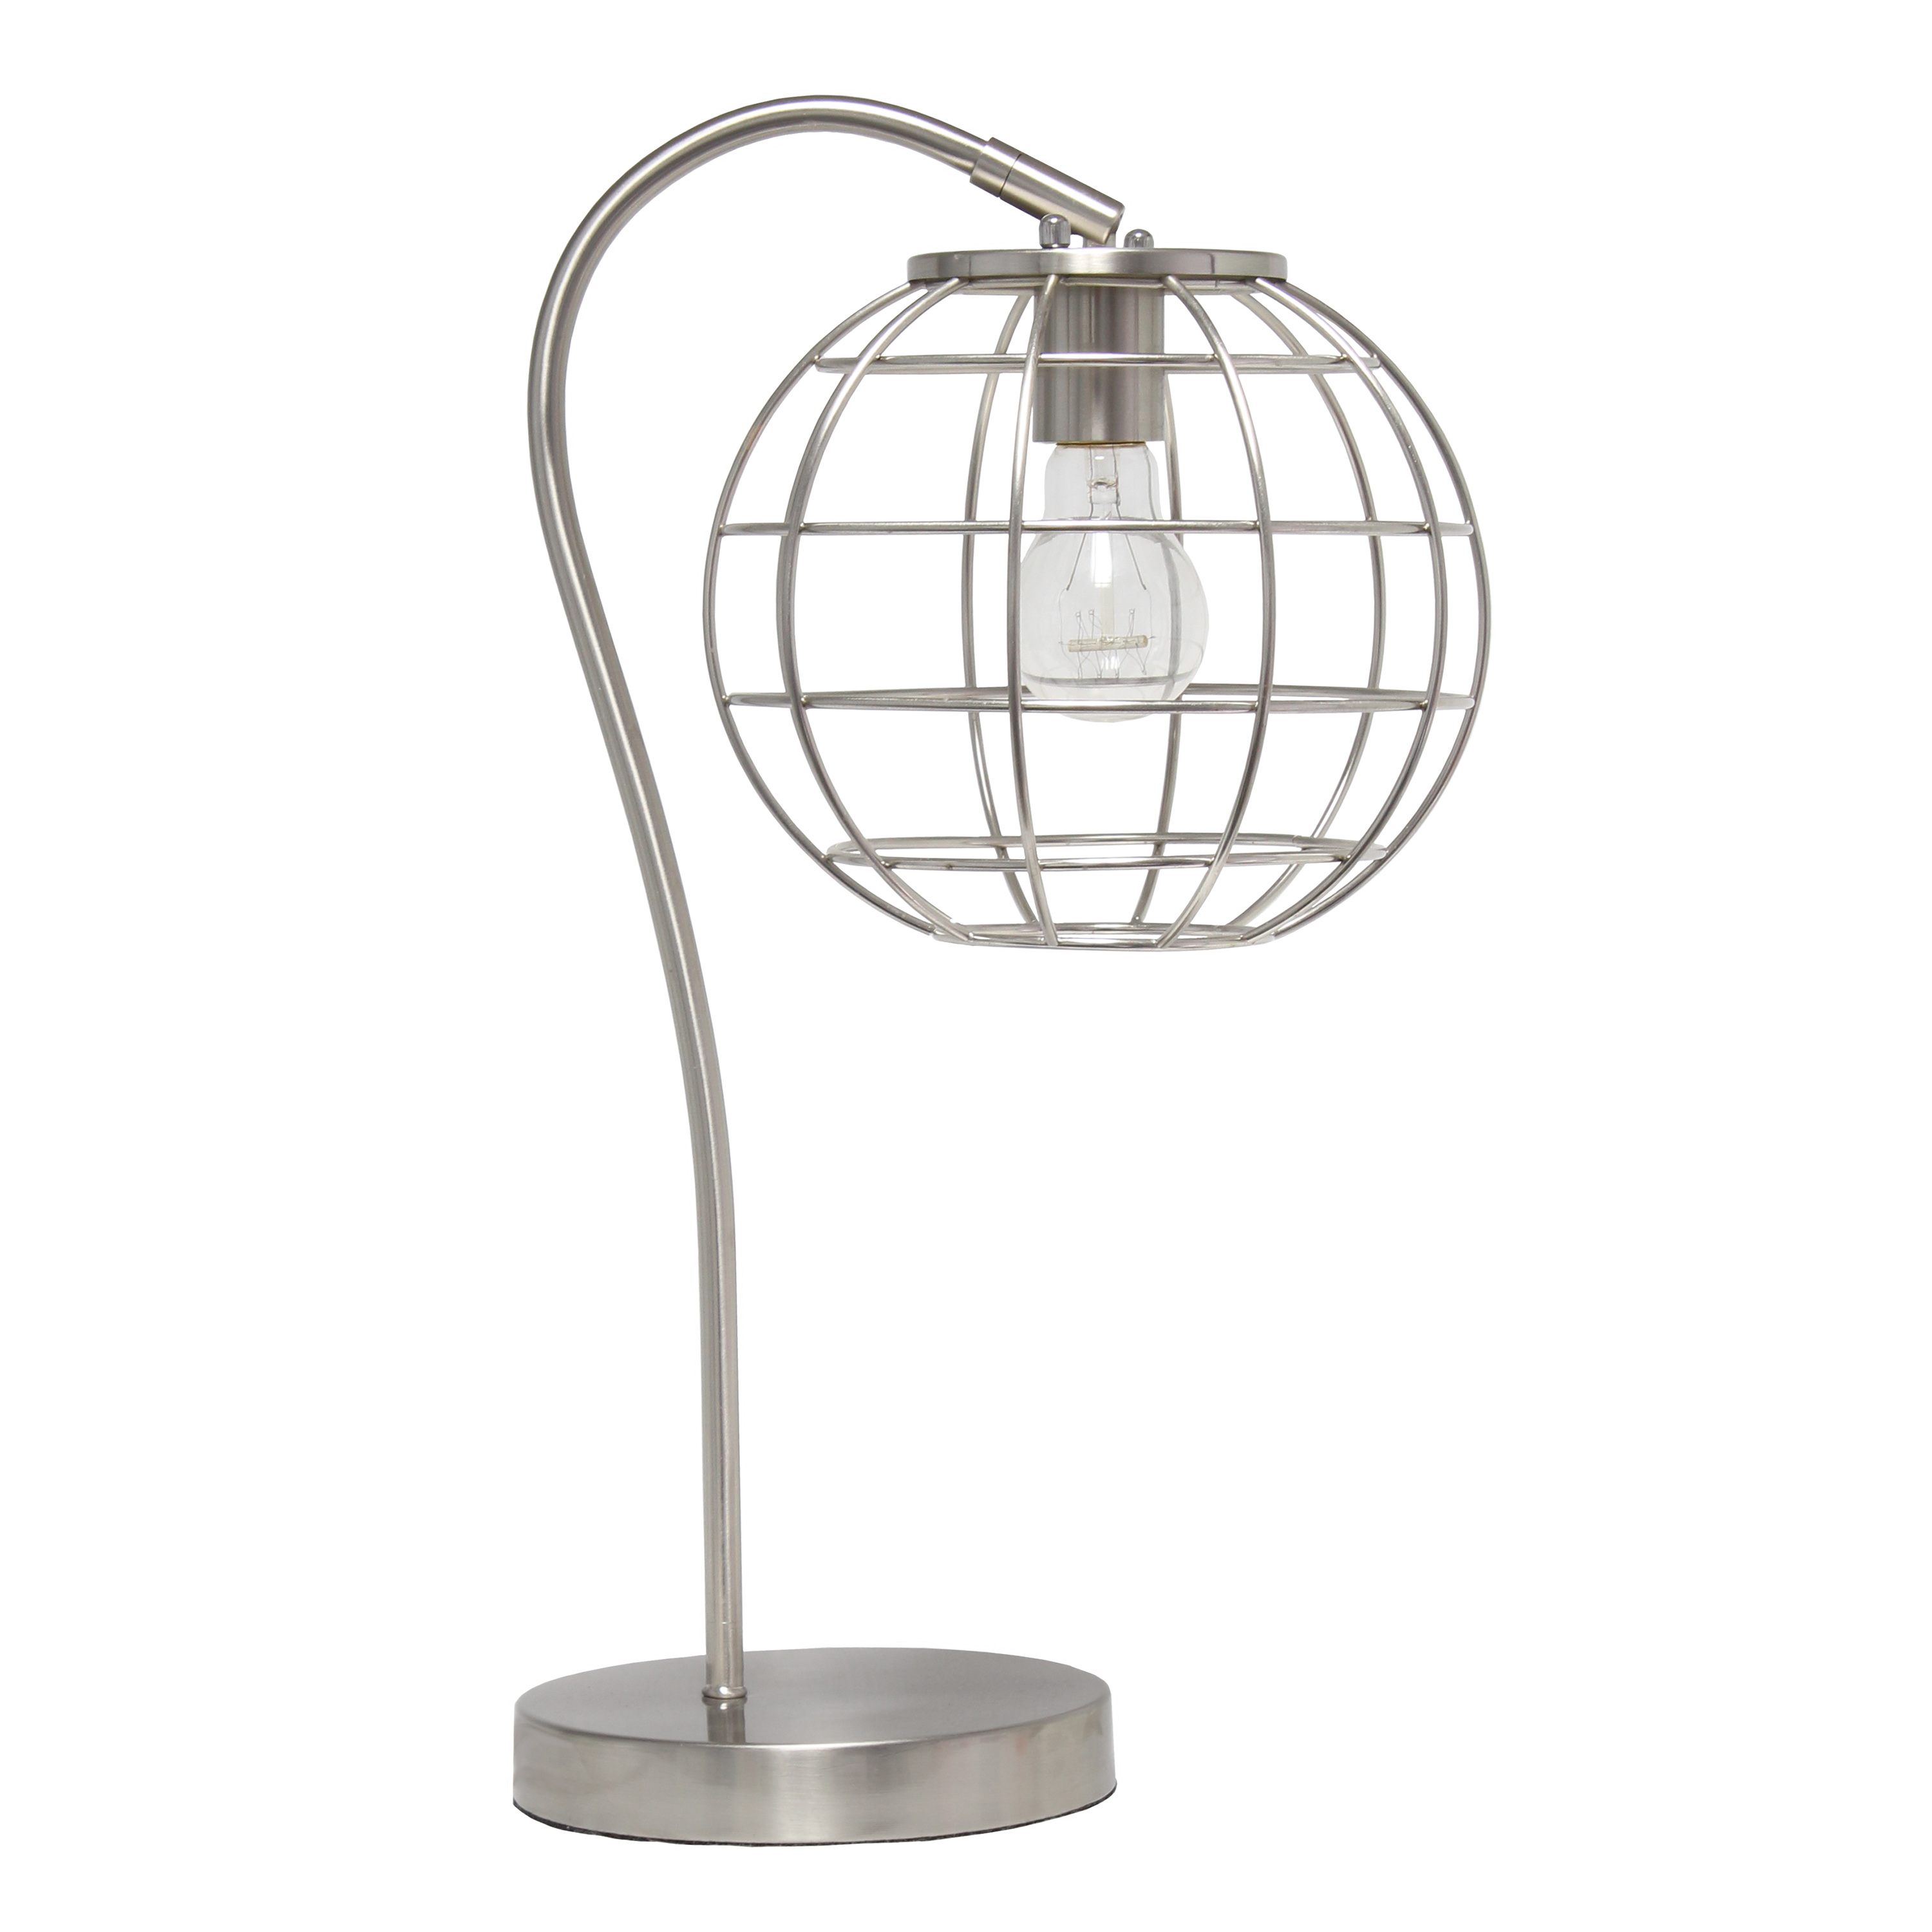 Lalia Home Arched Metal Cage Table Lamp, Brushed Nickel